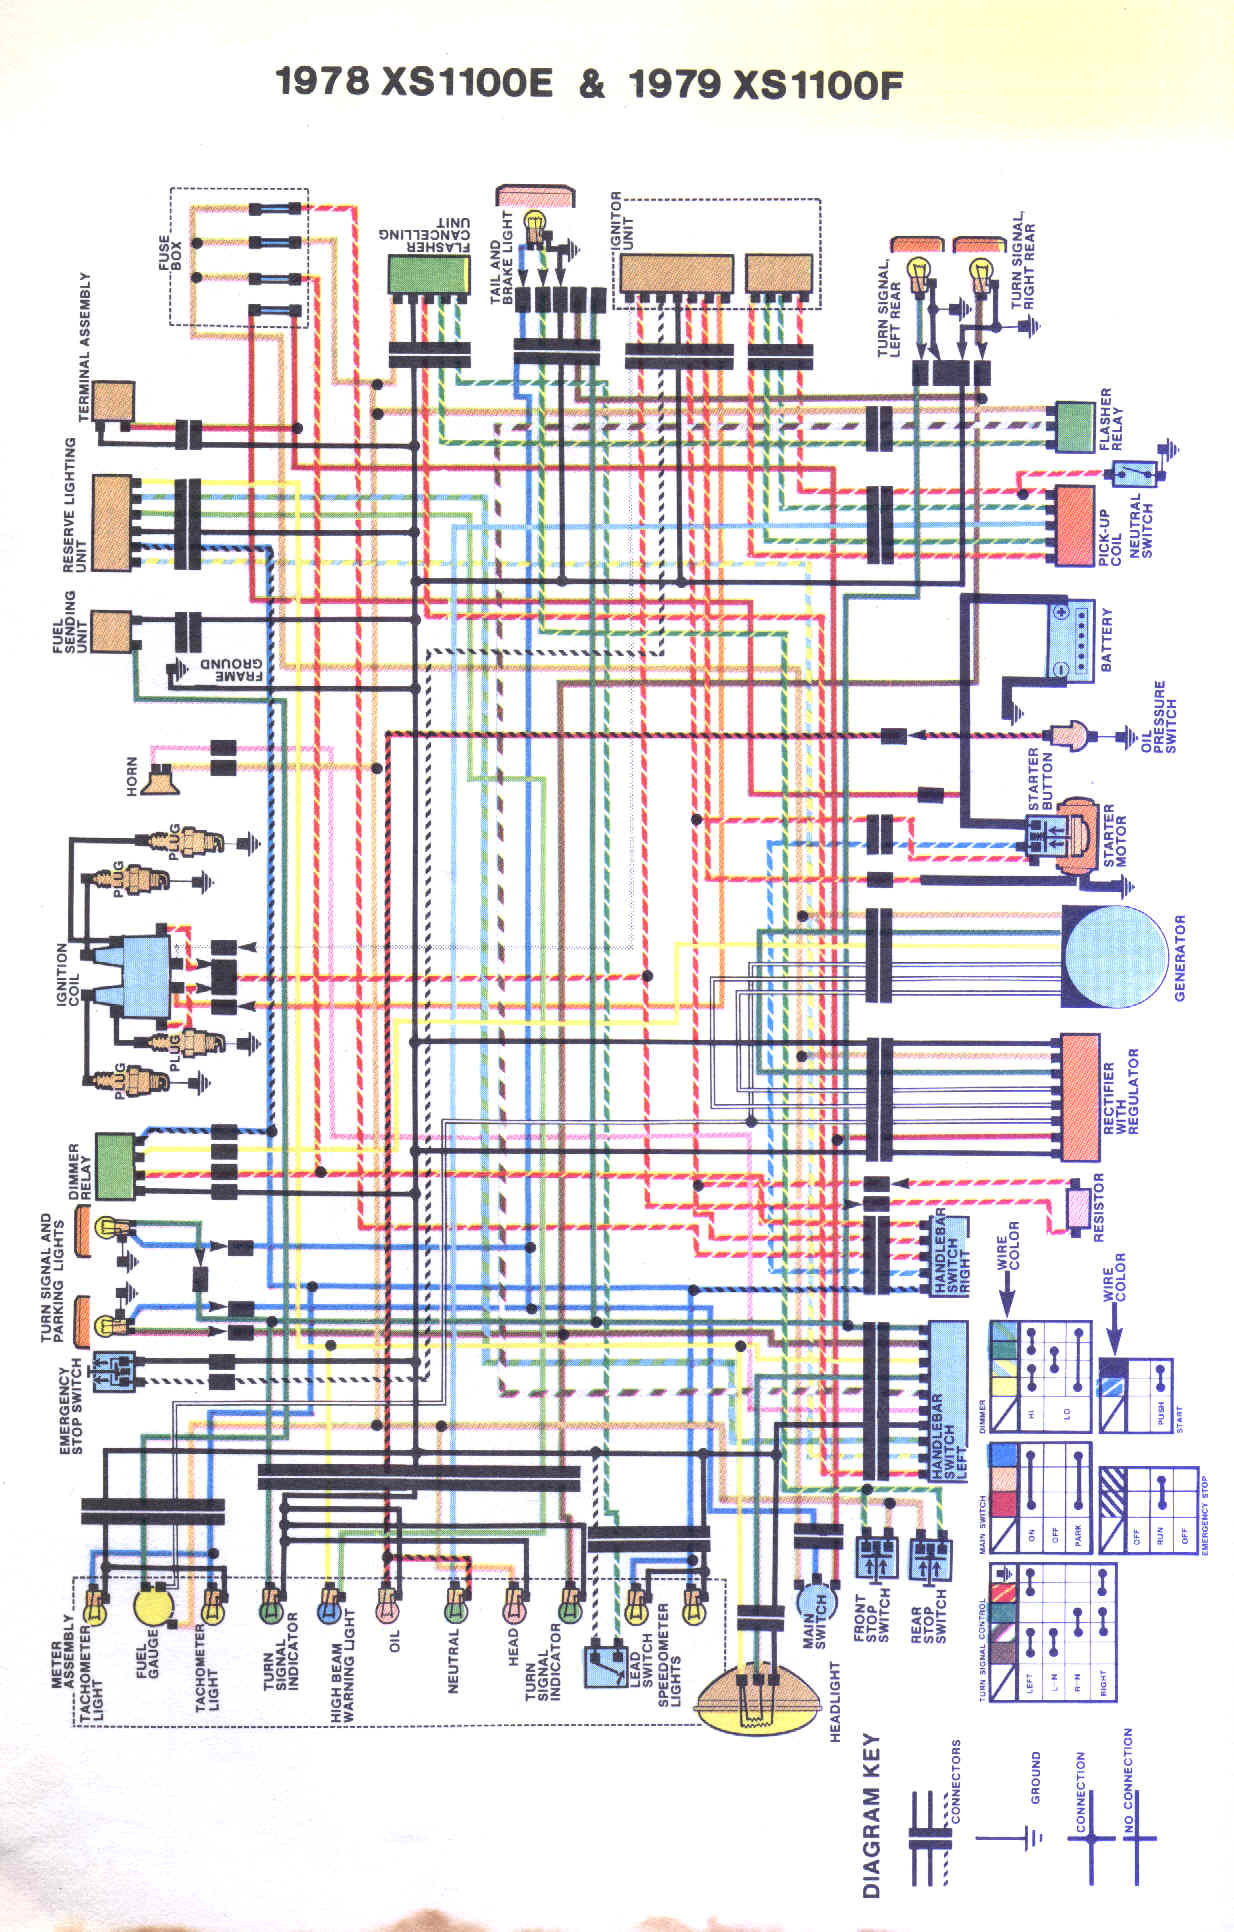 Diagram Yamaha Maxim 750 Wiring Diagram Full Version Hd Quality Wiring Diagram Blogxgoo Mefpie Fr